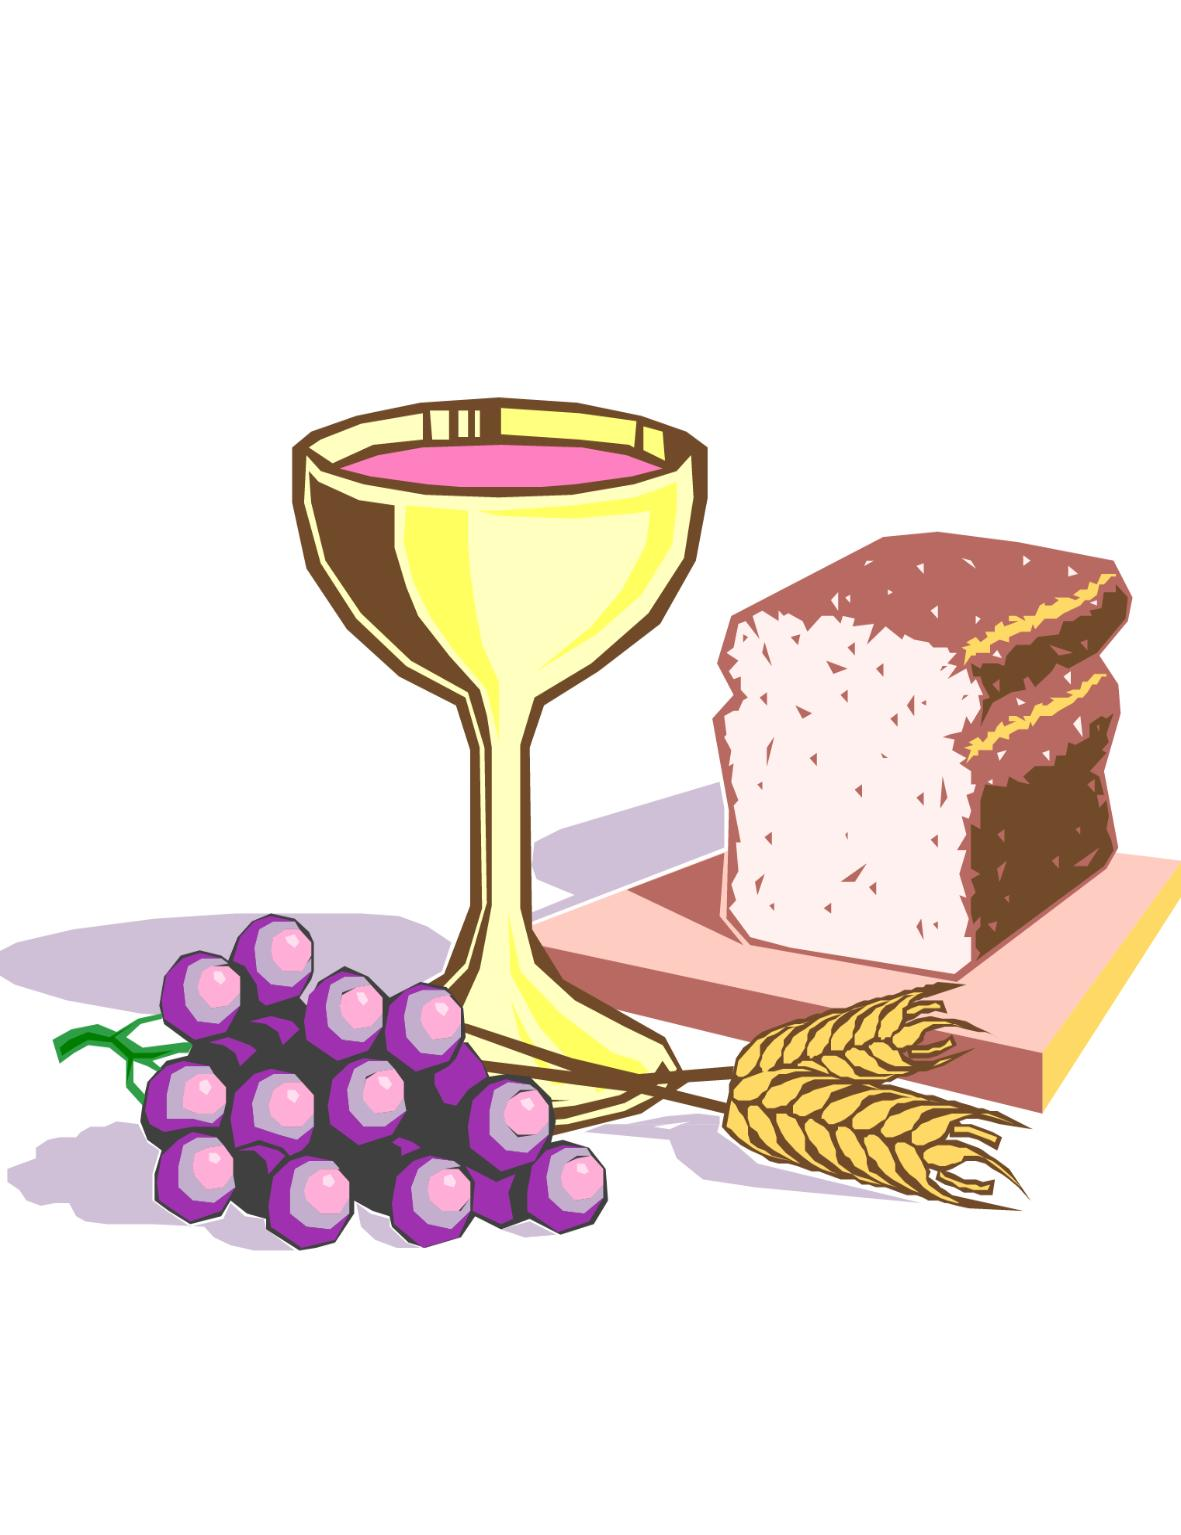 Lord's Supper Clipart : lord's, supper, clipart, Lords, Supper, Library